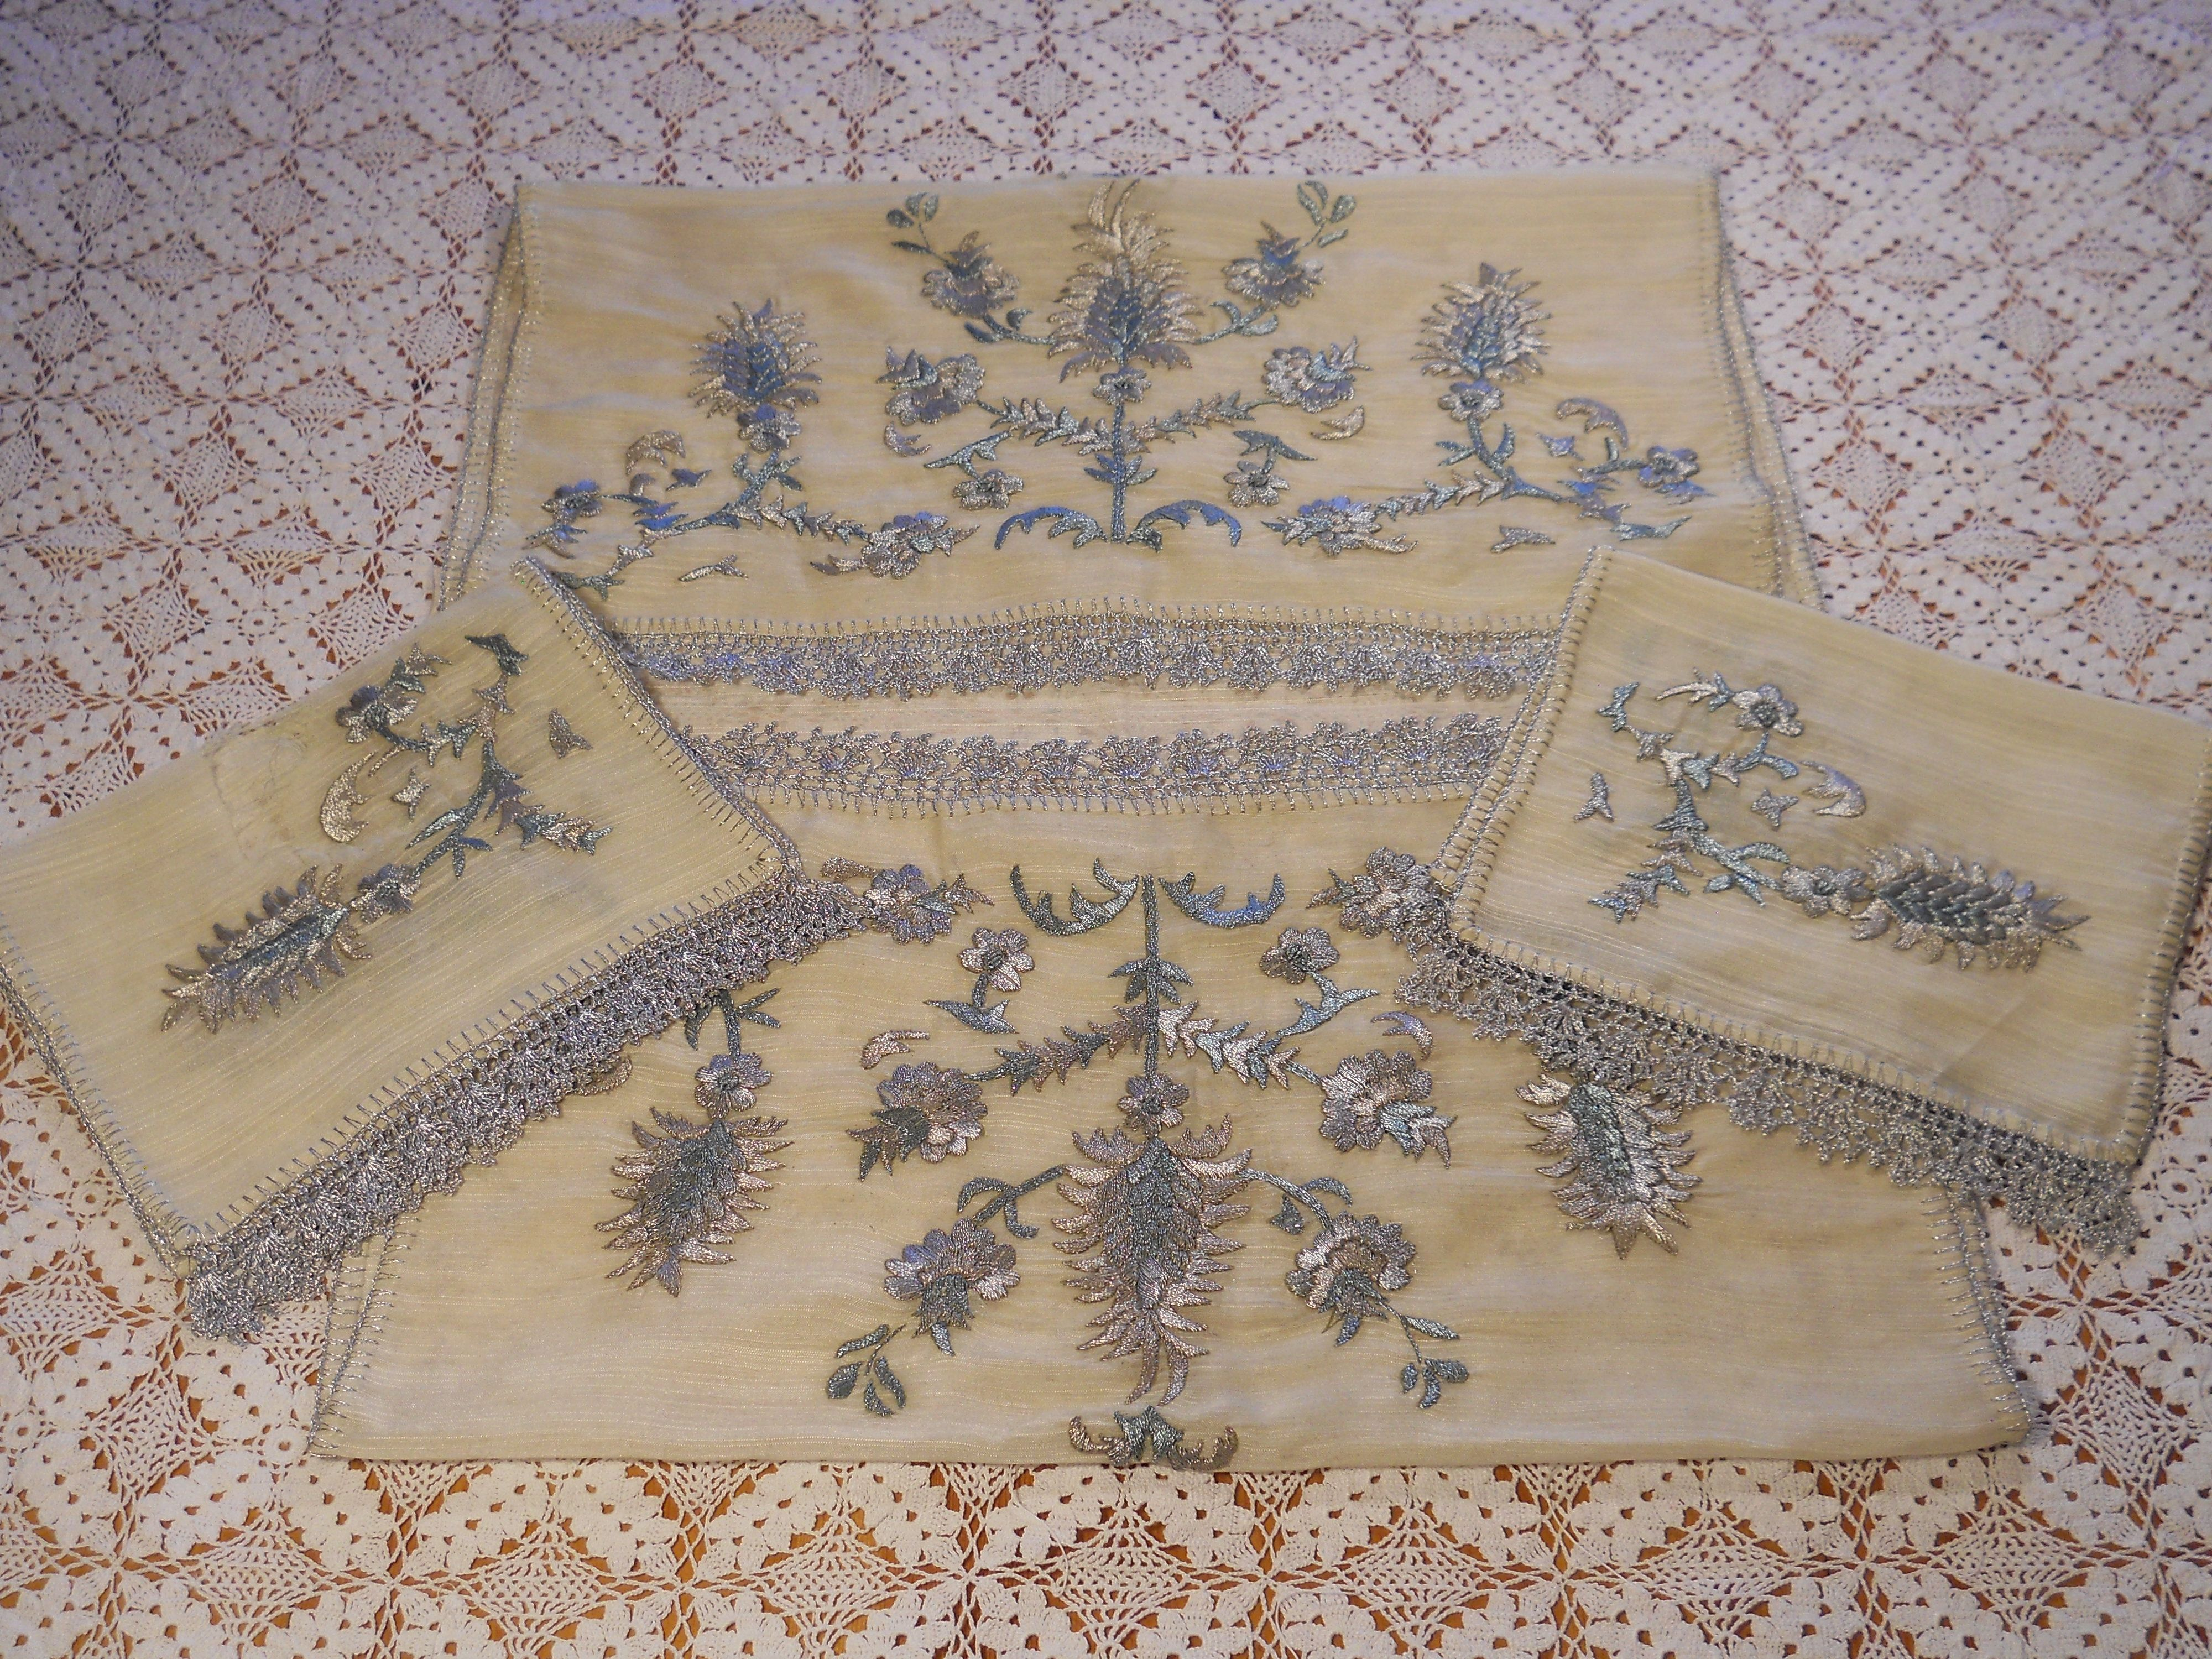 Embroidered Table Runner - Turkey